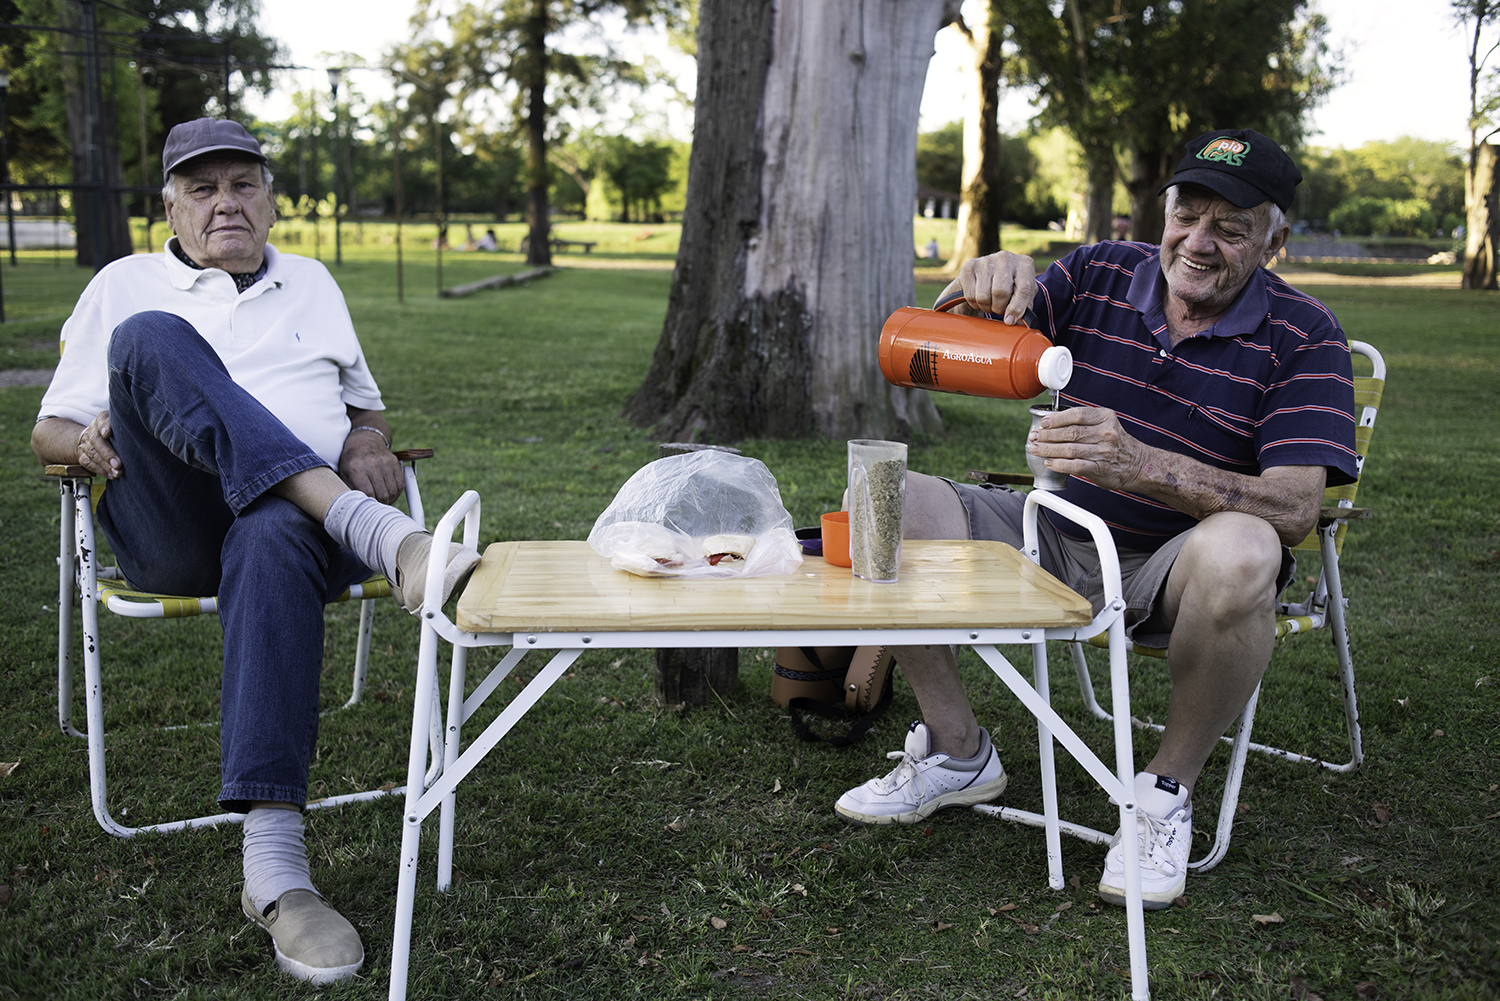 Two men drinking mate in a park. San Antonio de Areco, Argentina.